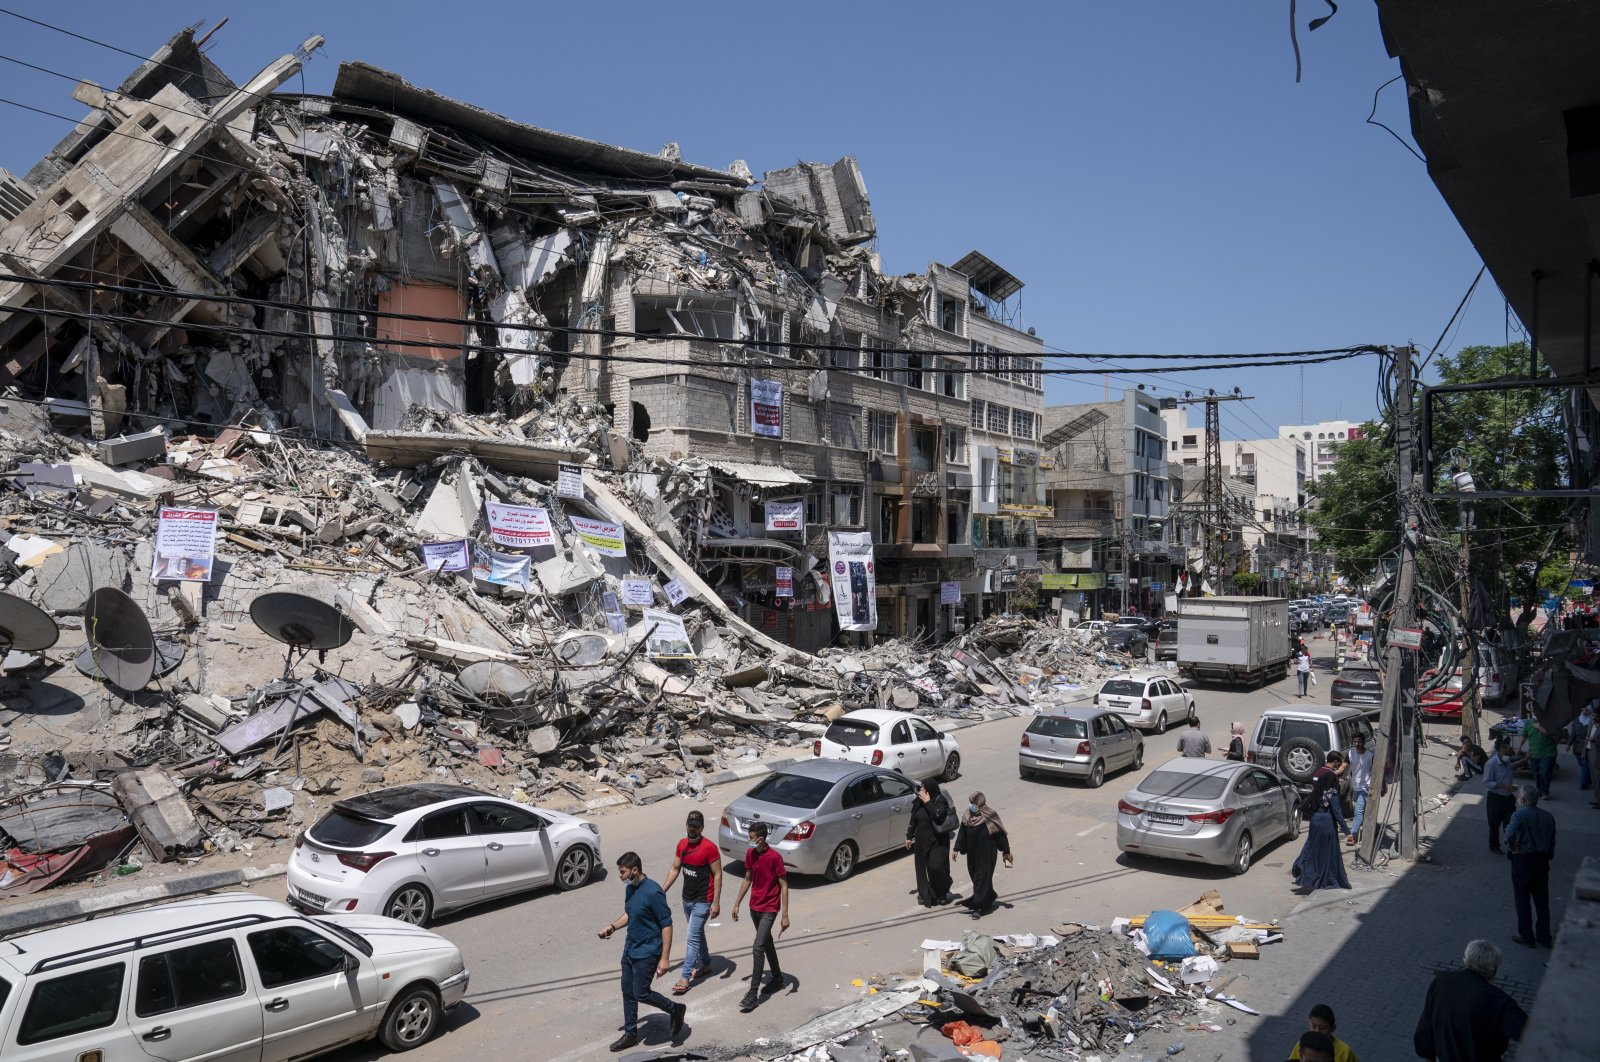 Motorists and pedestrians move past a building destroyed by an airstrike prior to a cease-fire that halted the 11-day war between Gaza's Hamas rulers and Israel in Gaza City, the Gaza Strip, May 25, 2021. (AP Photo)